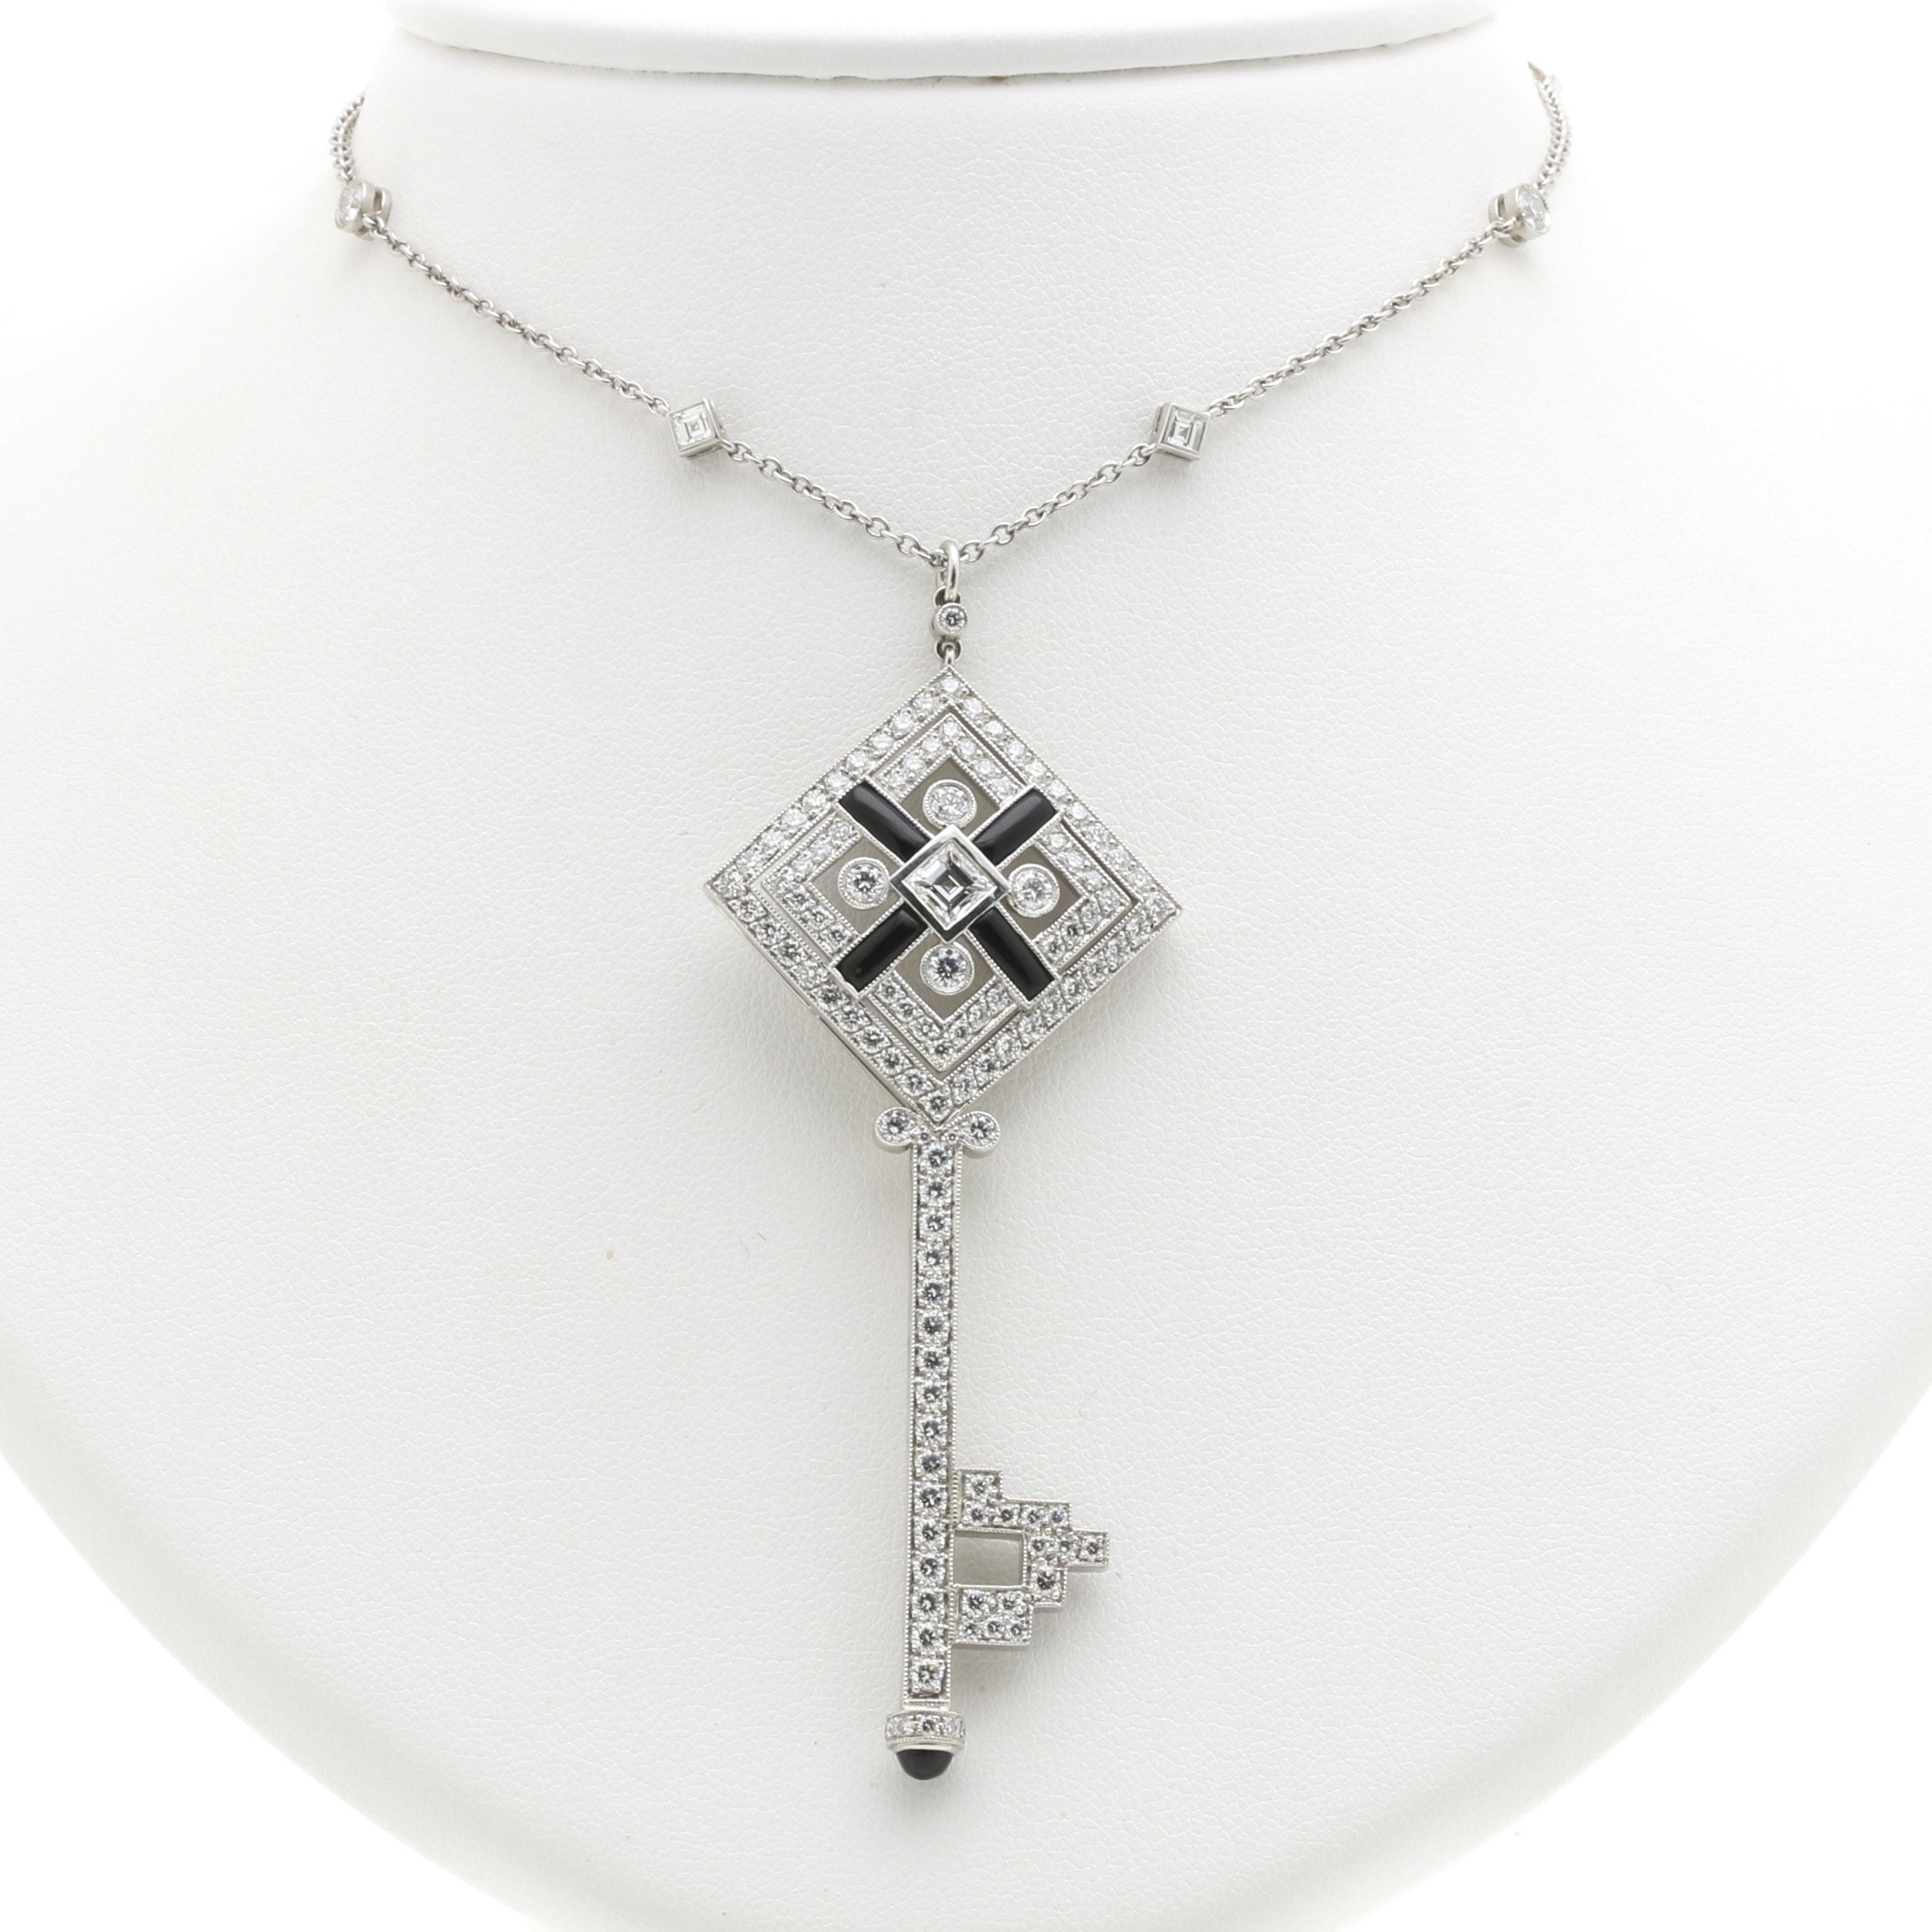 Tiffany & Co. Platinum, Onyx, and 4.46 CTW Diamond Square Key Necklace